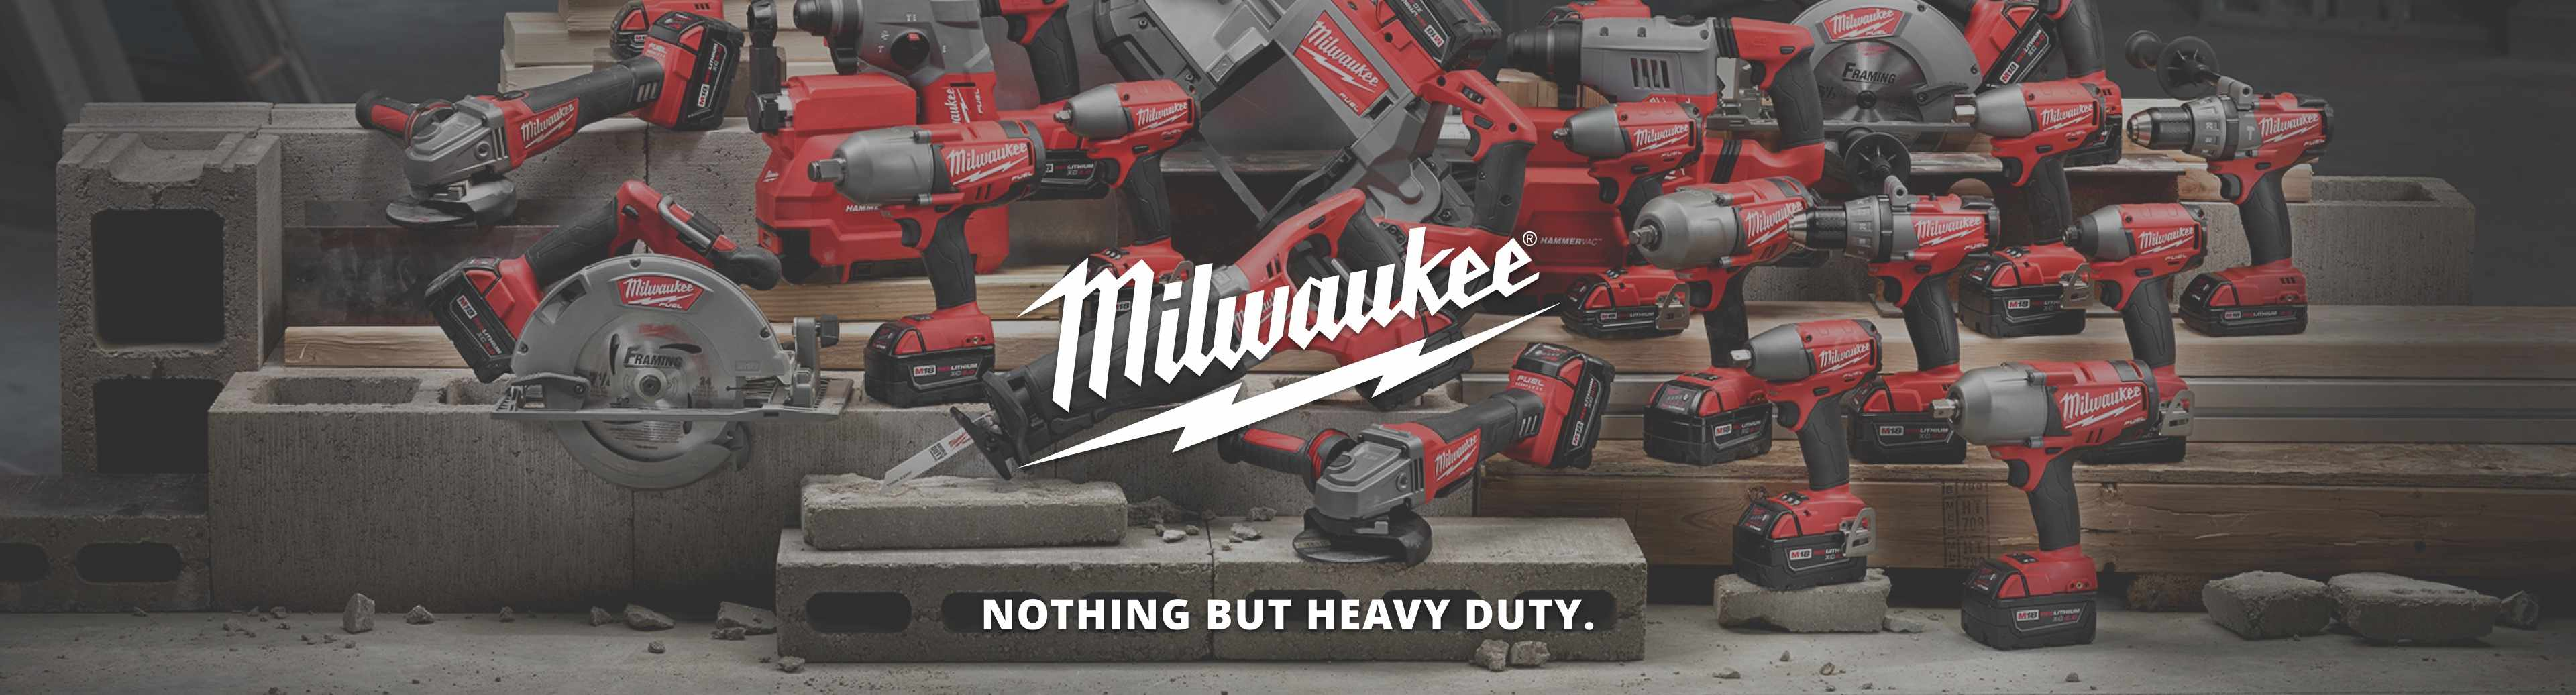 Shop Milwaukee power tools at G. R. Smith